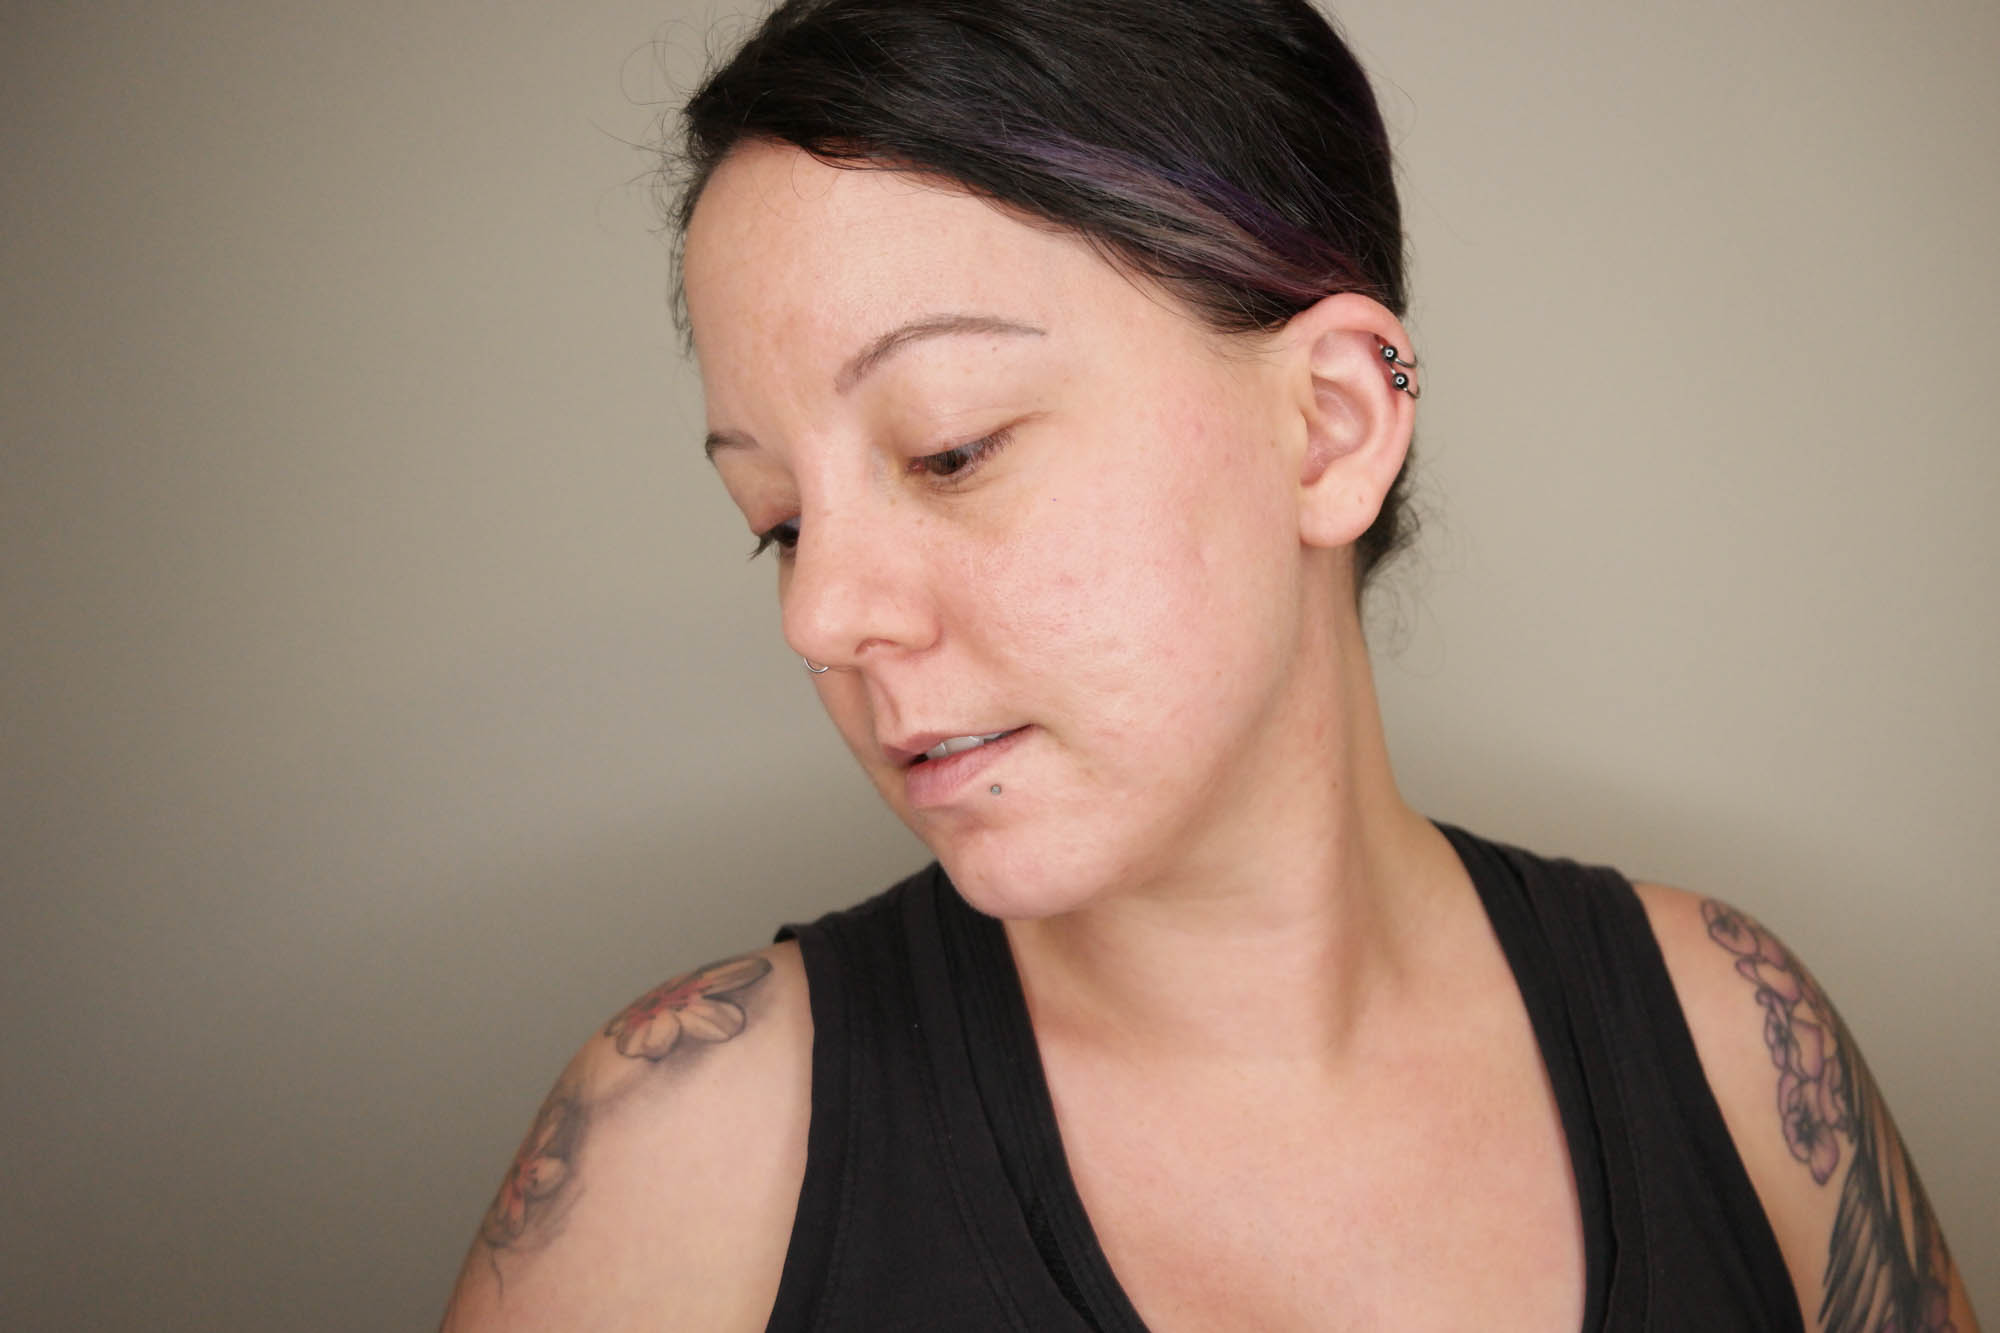 Adding Insult to Injury: Post Inflammatory Hyperpigmentation